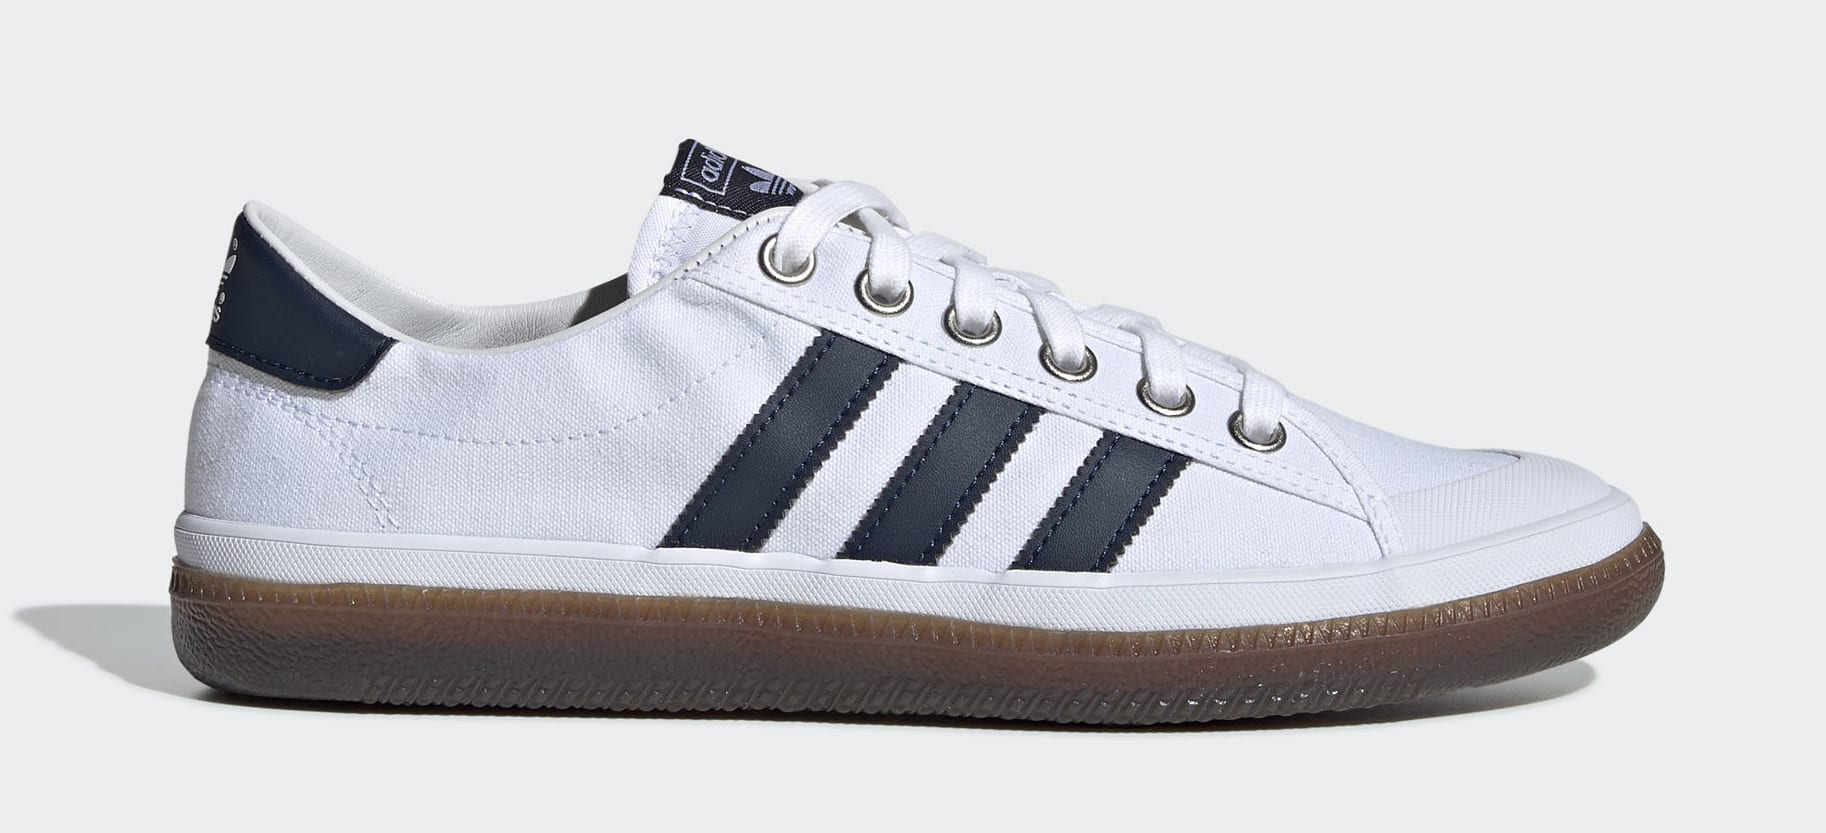 Adidas Norfu Spezial Lateral F35719